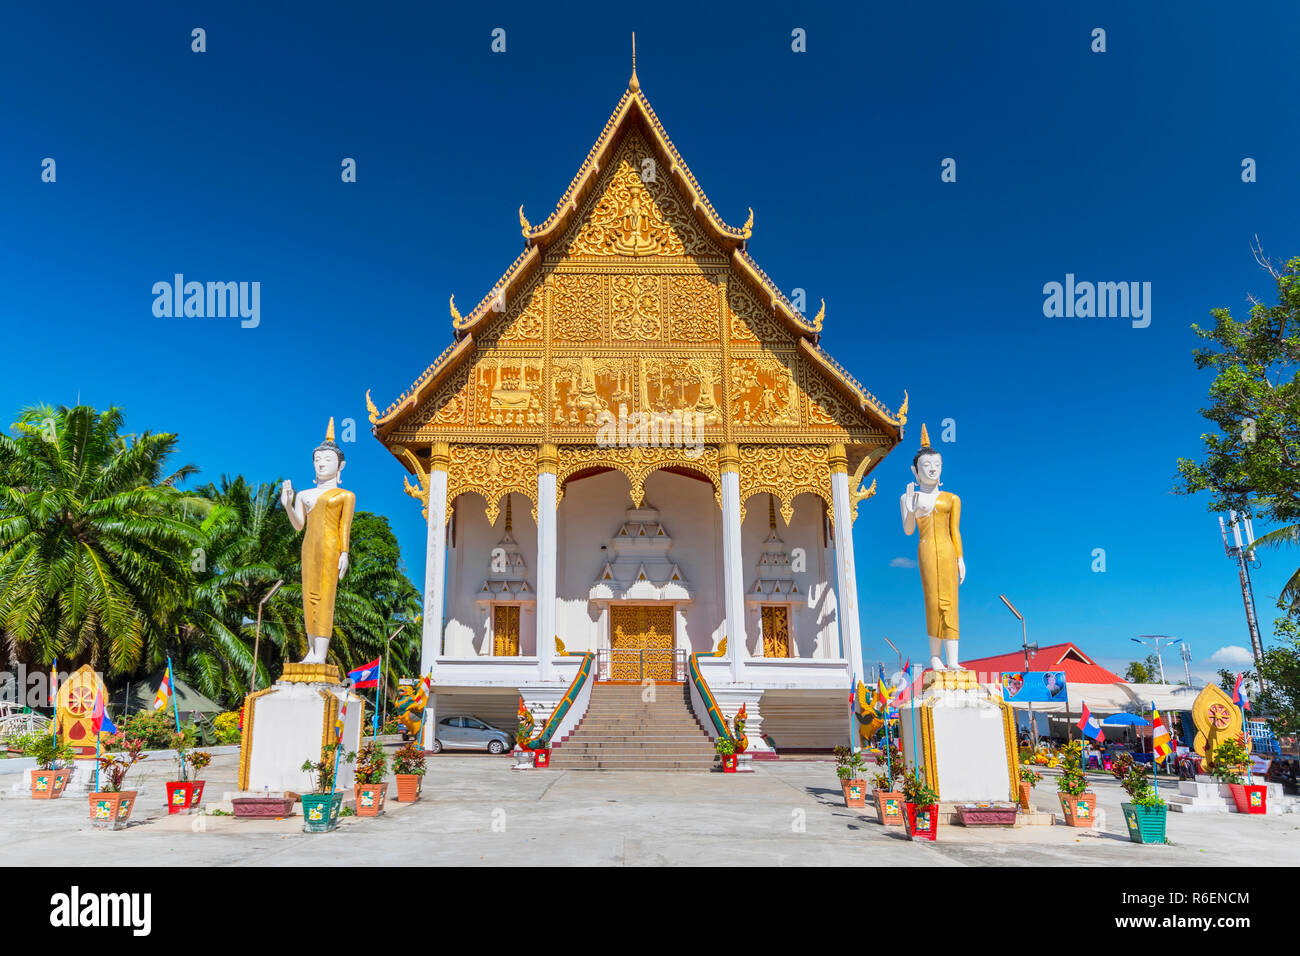 Buddha Statues In Front Of Wat That Luang Neua Temple, Vientiane, Laos, Indochina, Asia - Stock Image